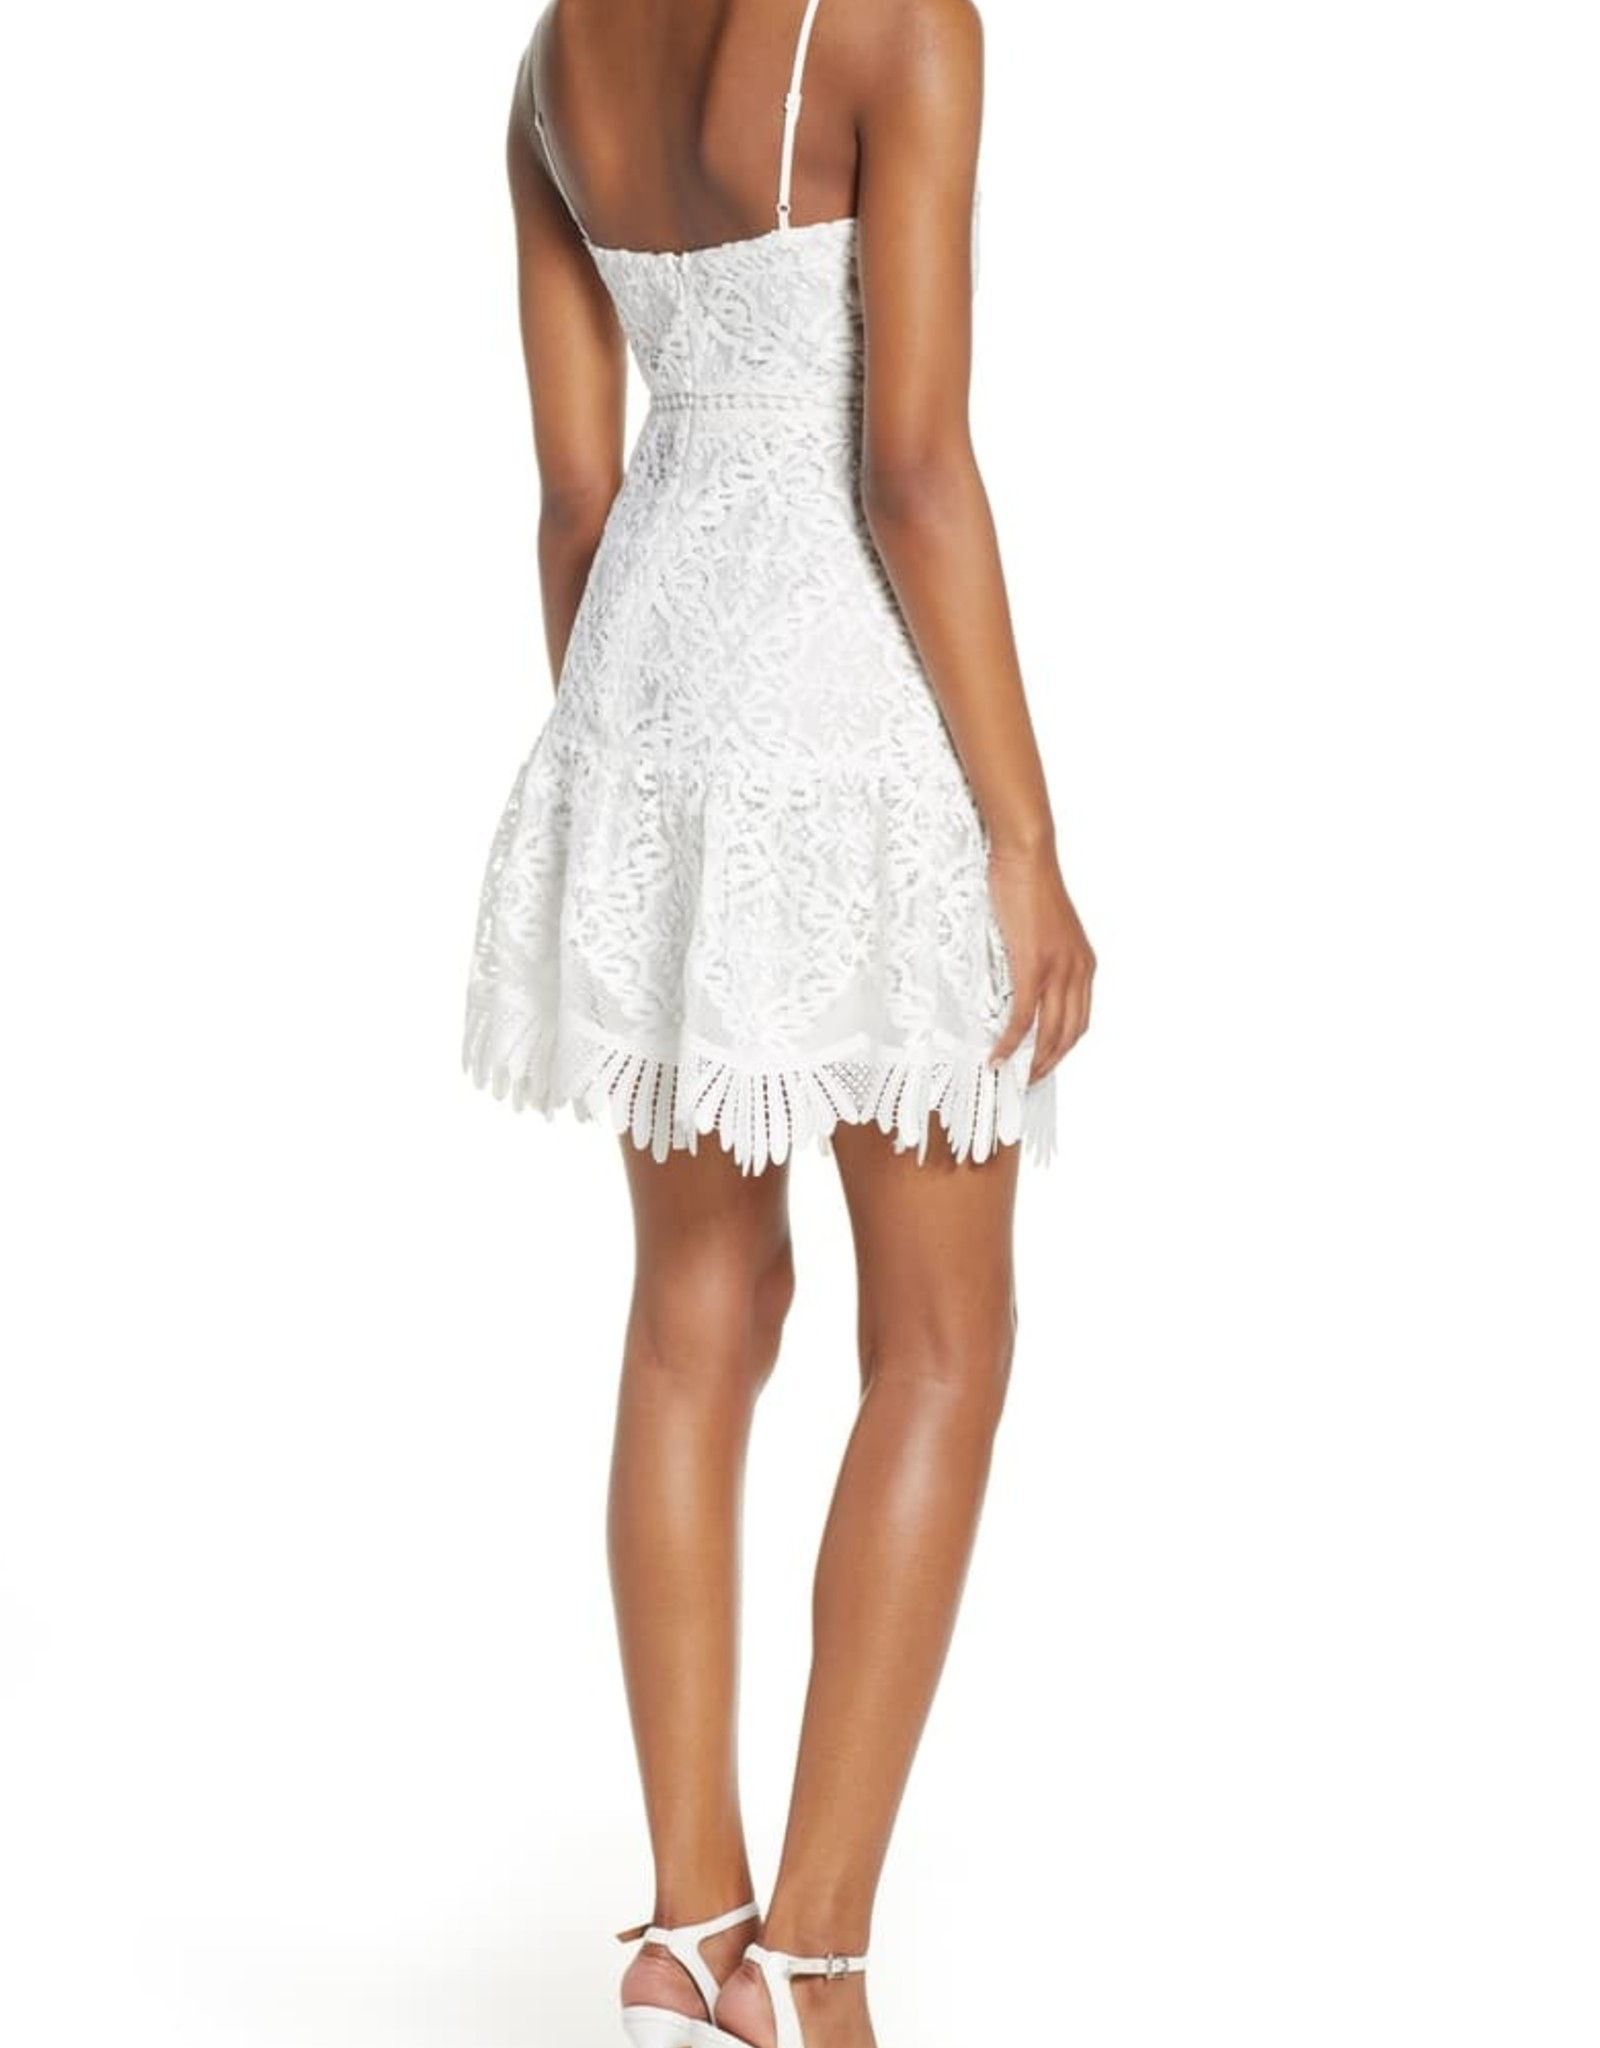 BB DAKOTA Party Has Arrived Crotchet Dress